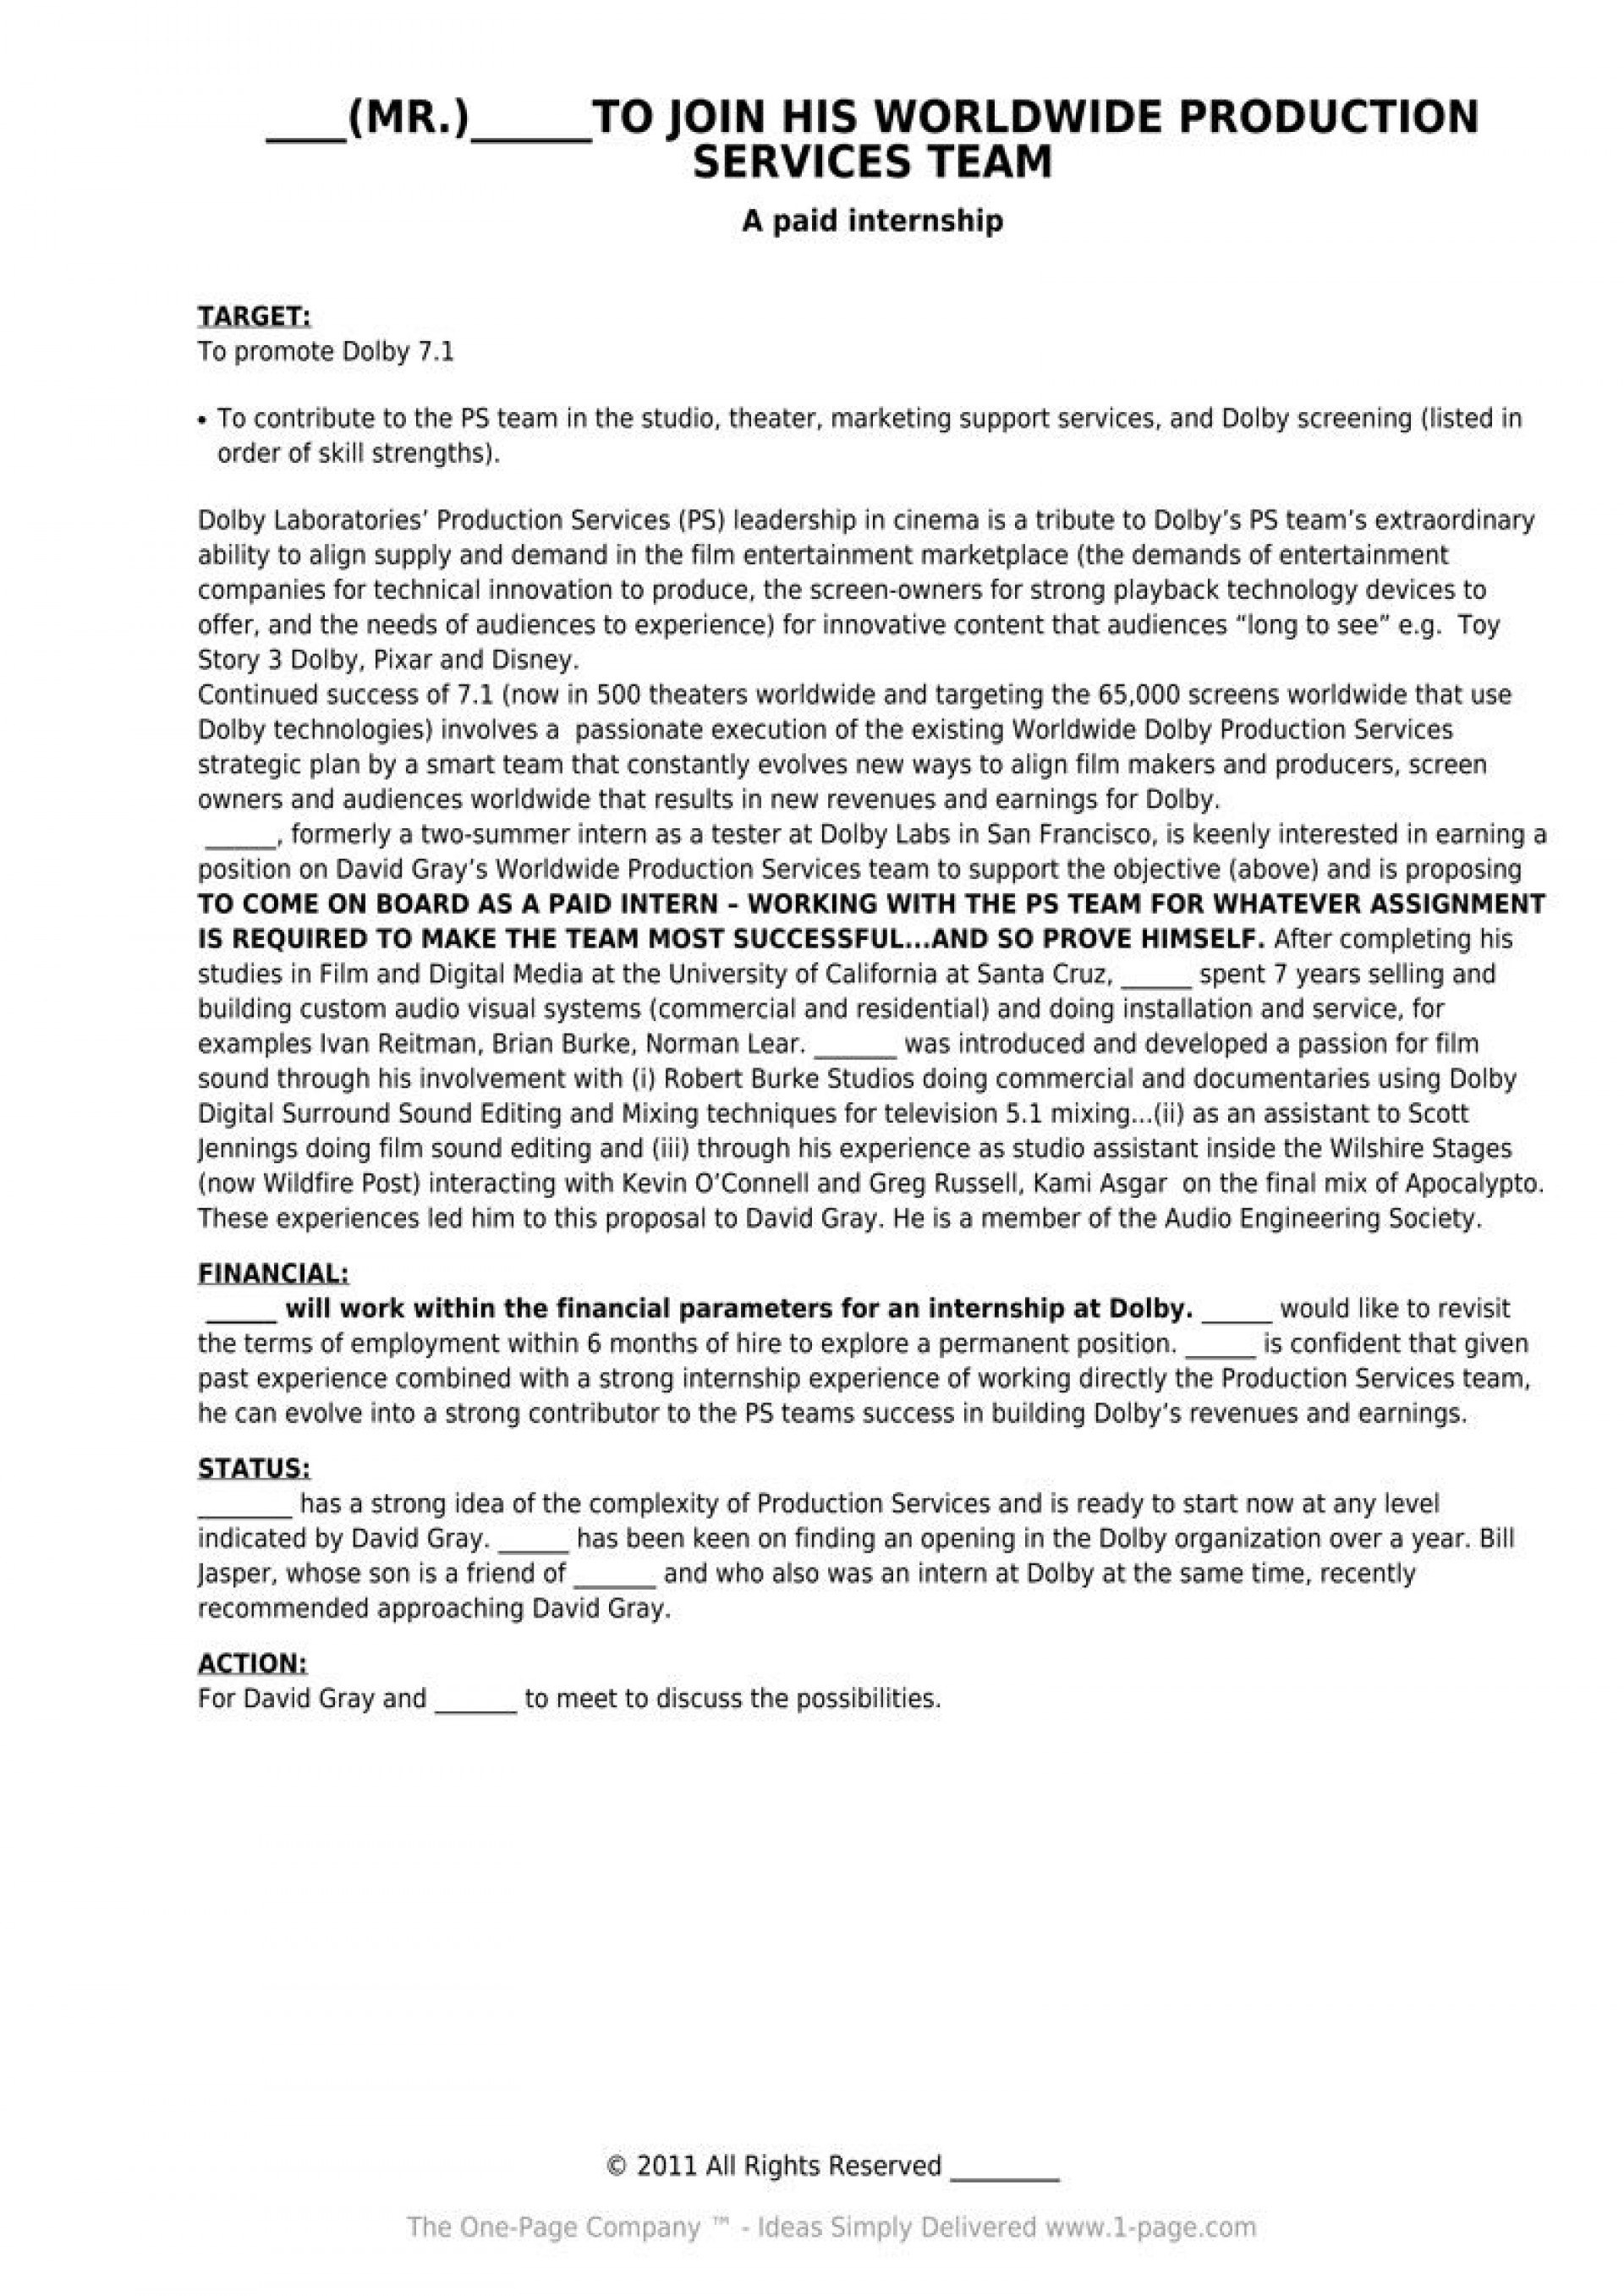 One Page Proposal Template Ideas Unusual Research Apa Business Pertaining To Idea Proposal Template